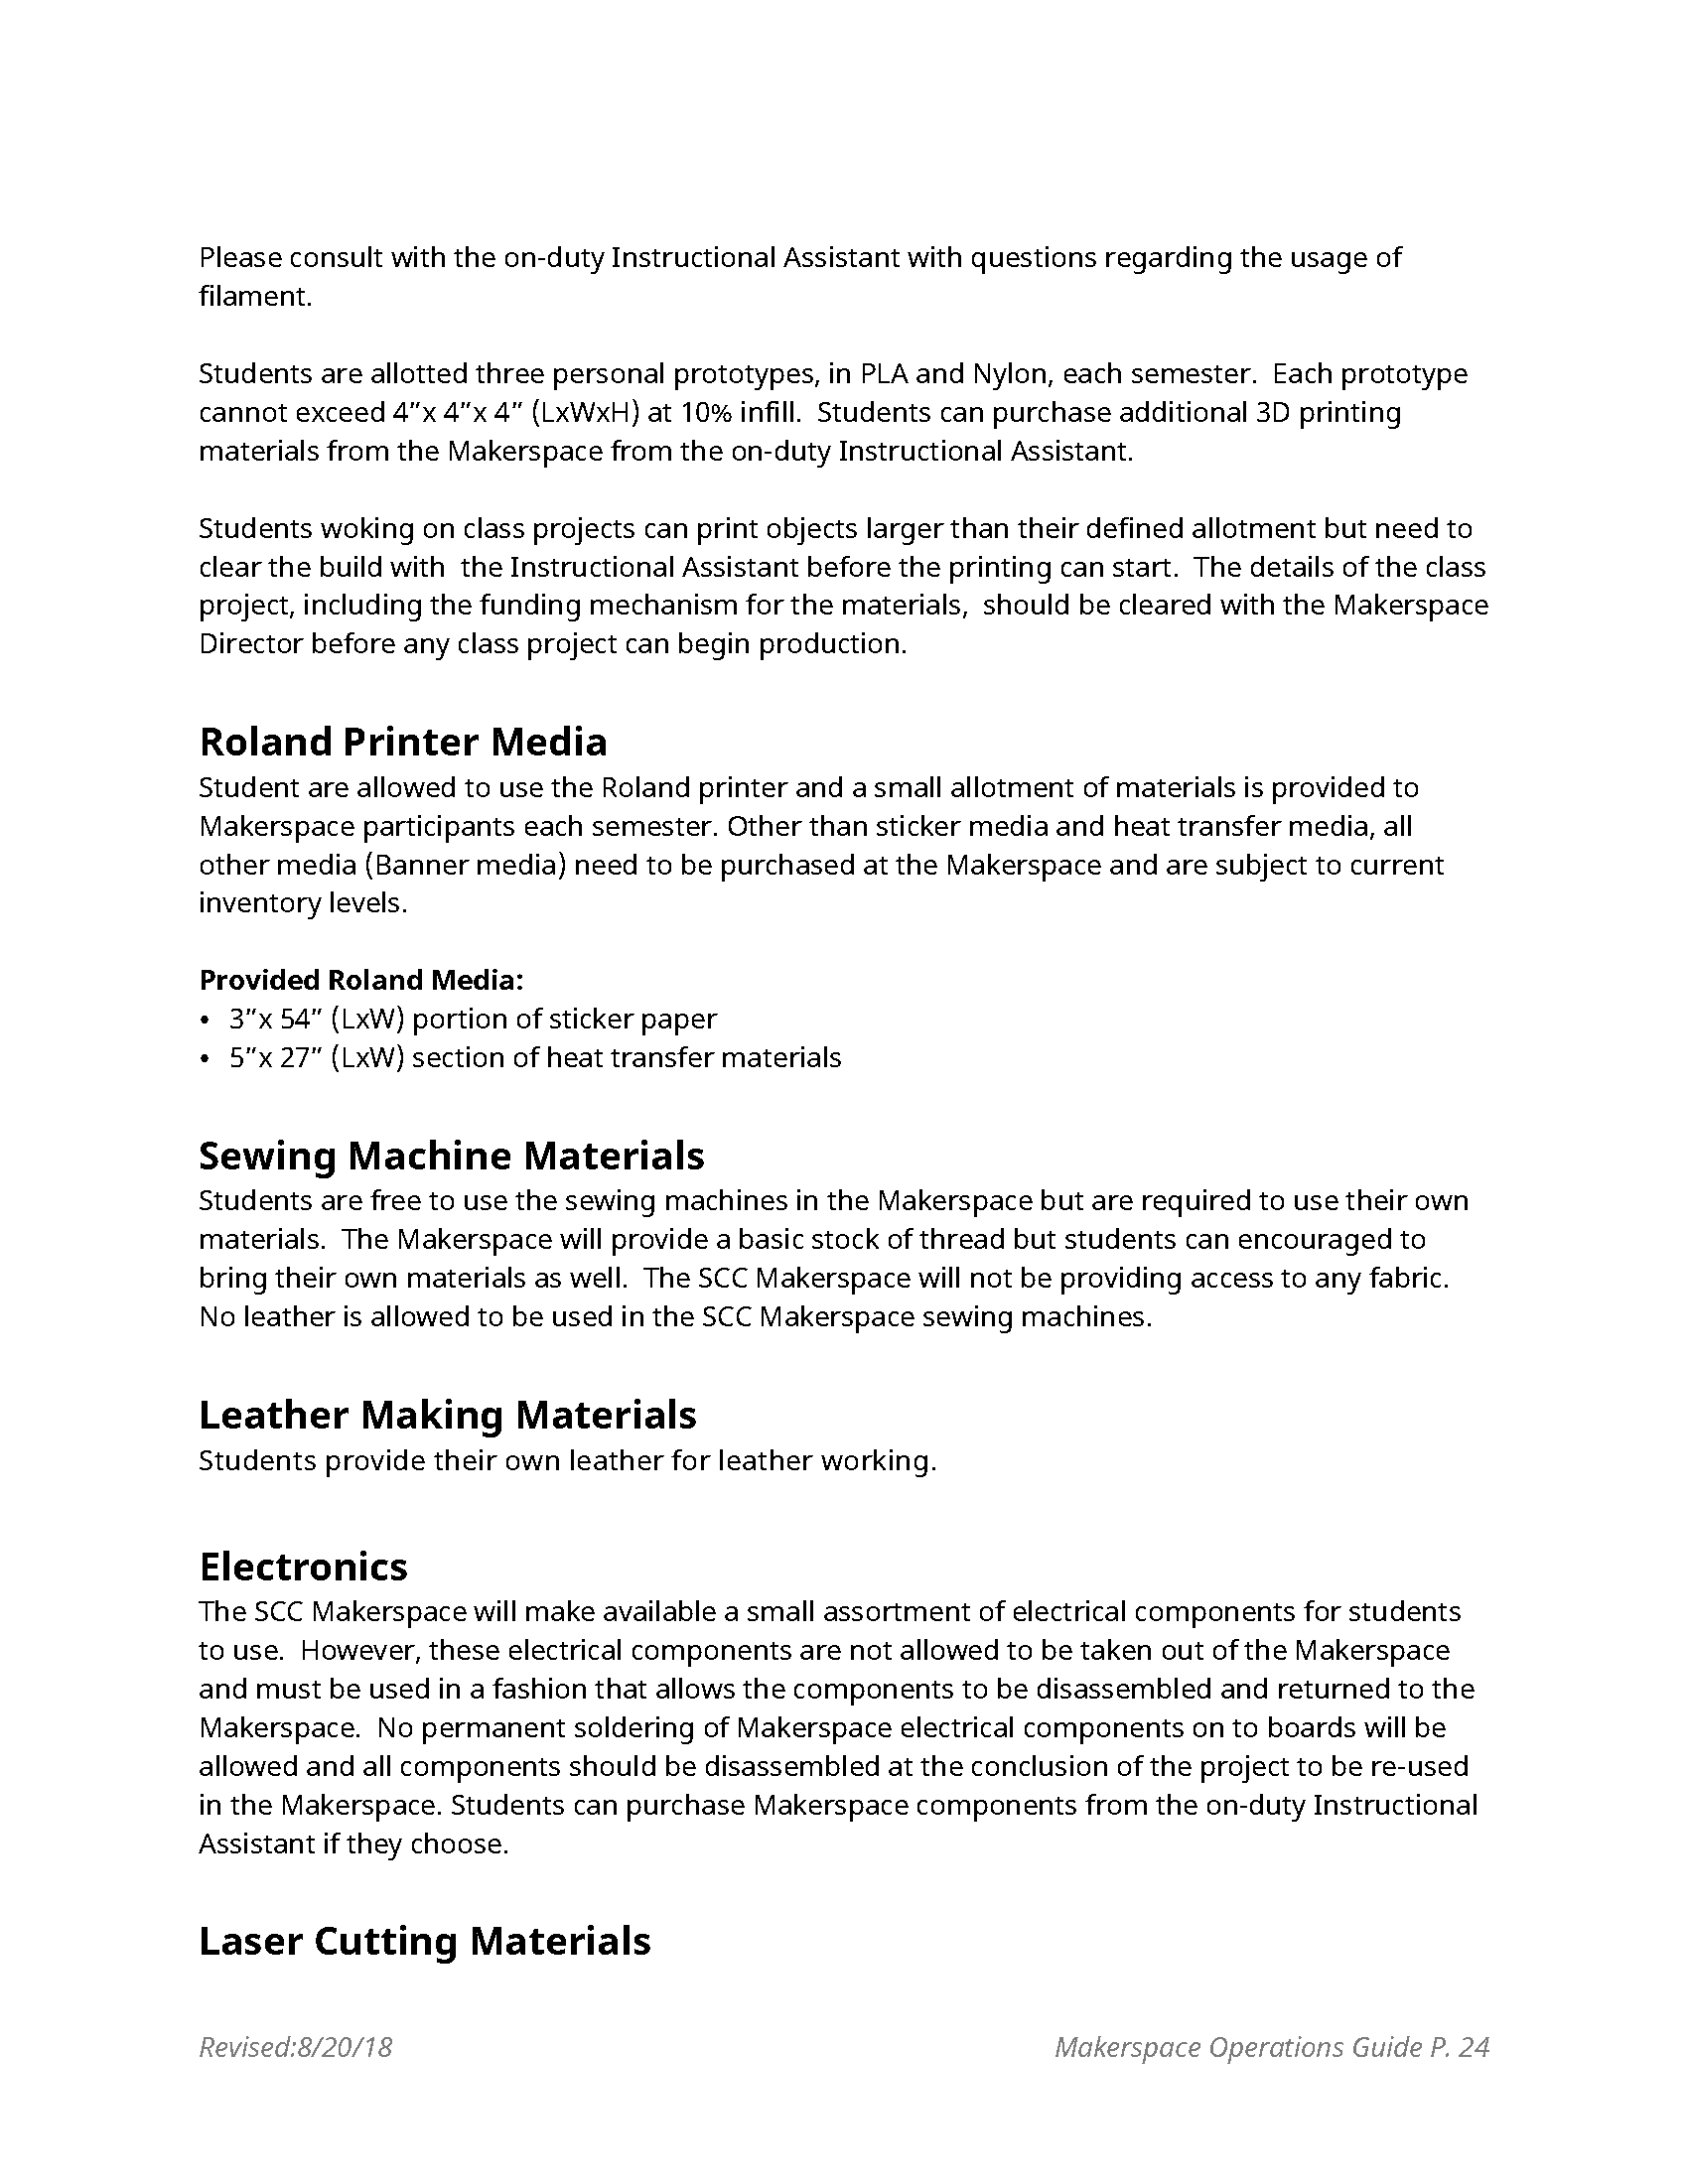 ms_ops_manual_8-20_Page_24.png